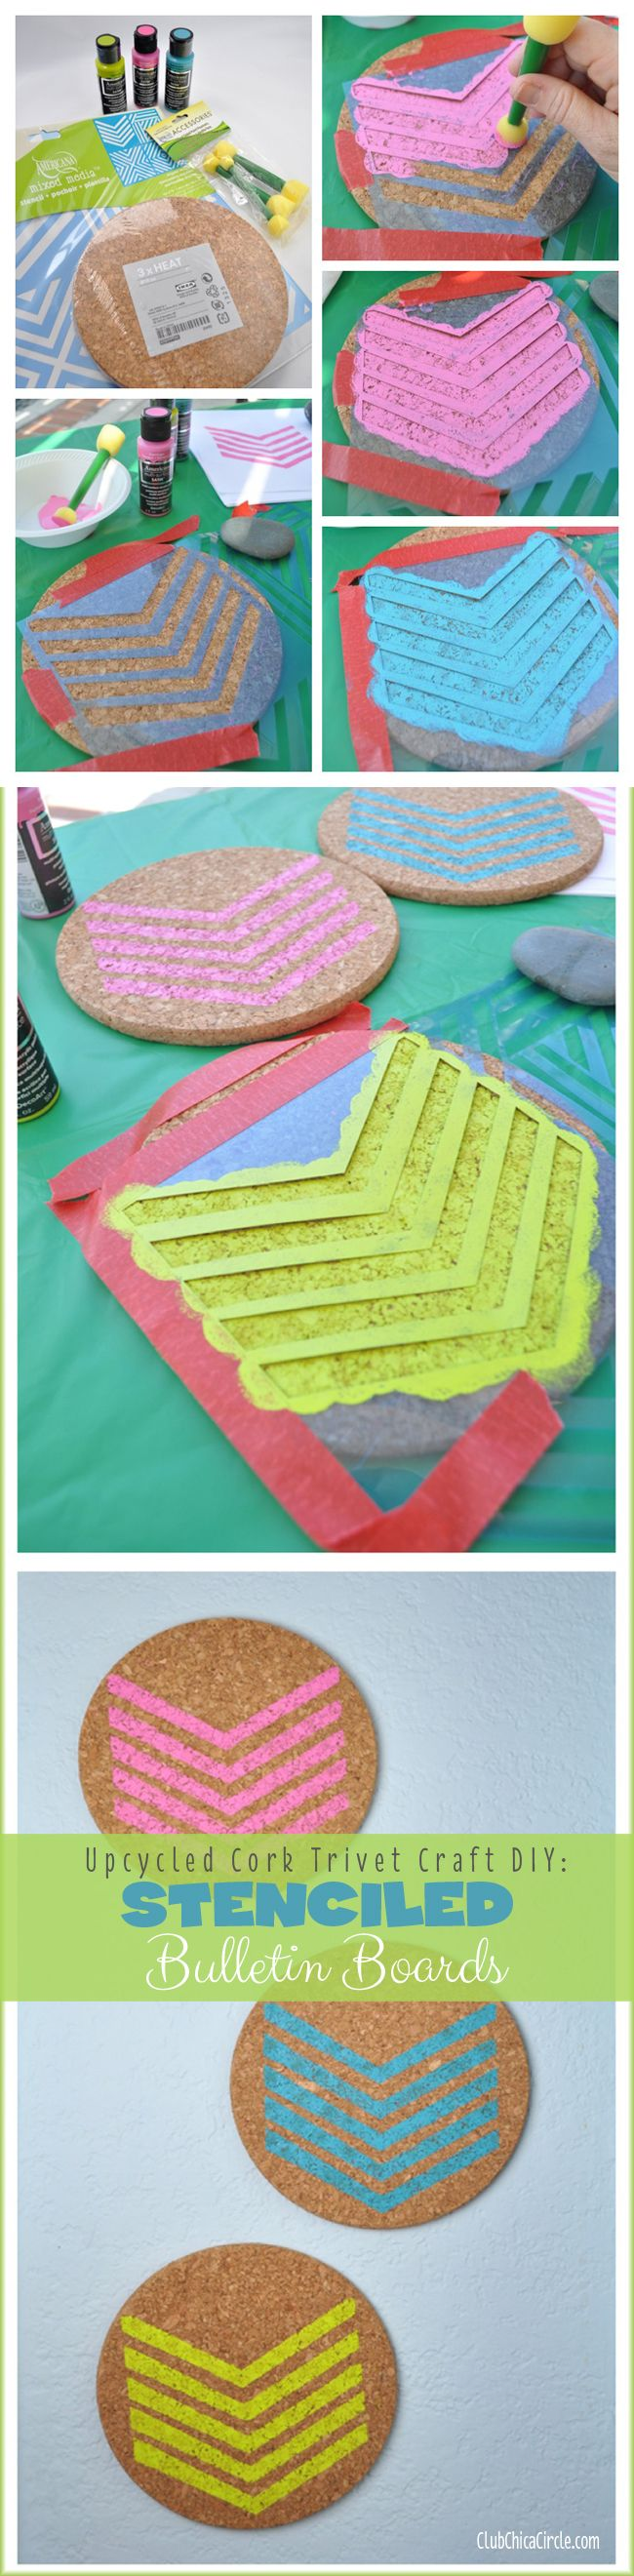 Upcycle Craft DIY- Cork Trivets into Stenciled Bulletin Boards using Americana Multi-surface Satin paint. 3-pack of IKEA cork trivets for $2, turn into cool room decor with stencils and paint. So simple!